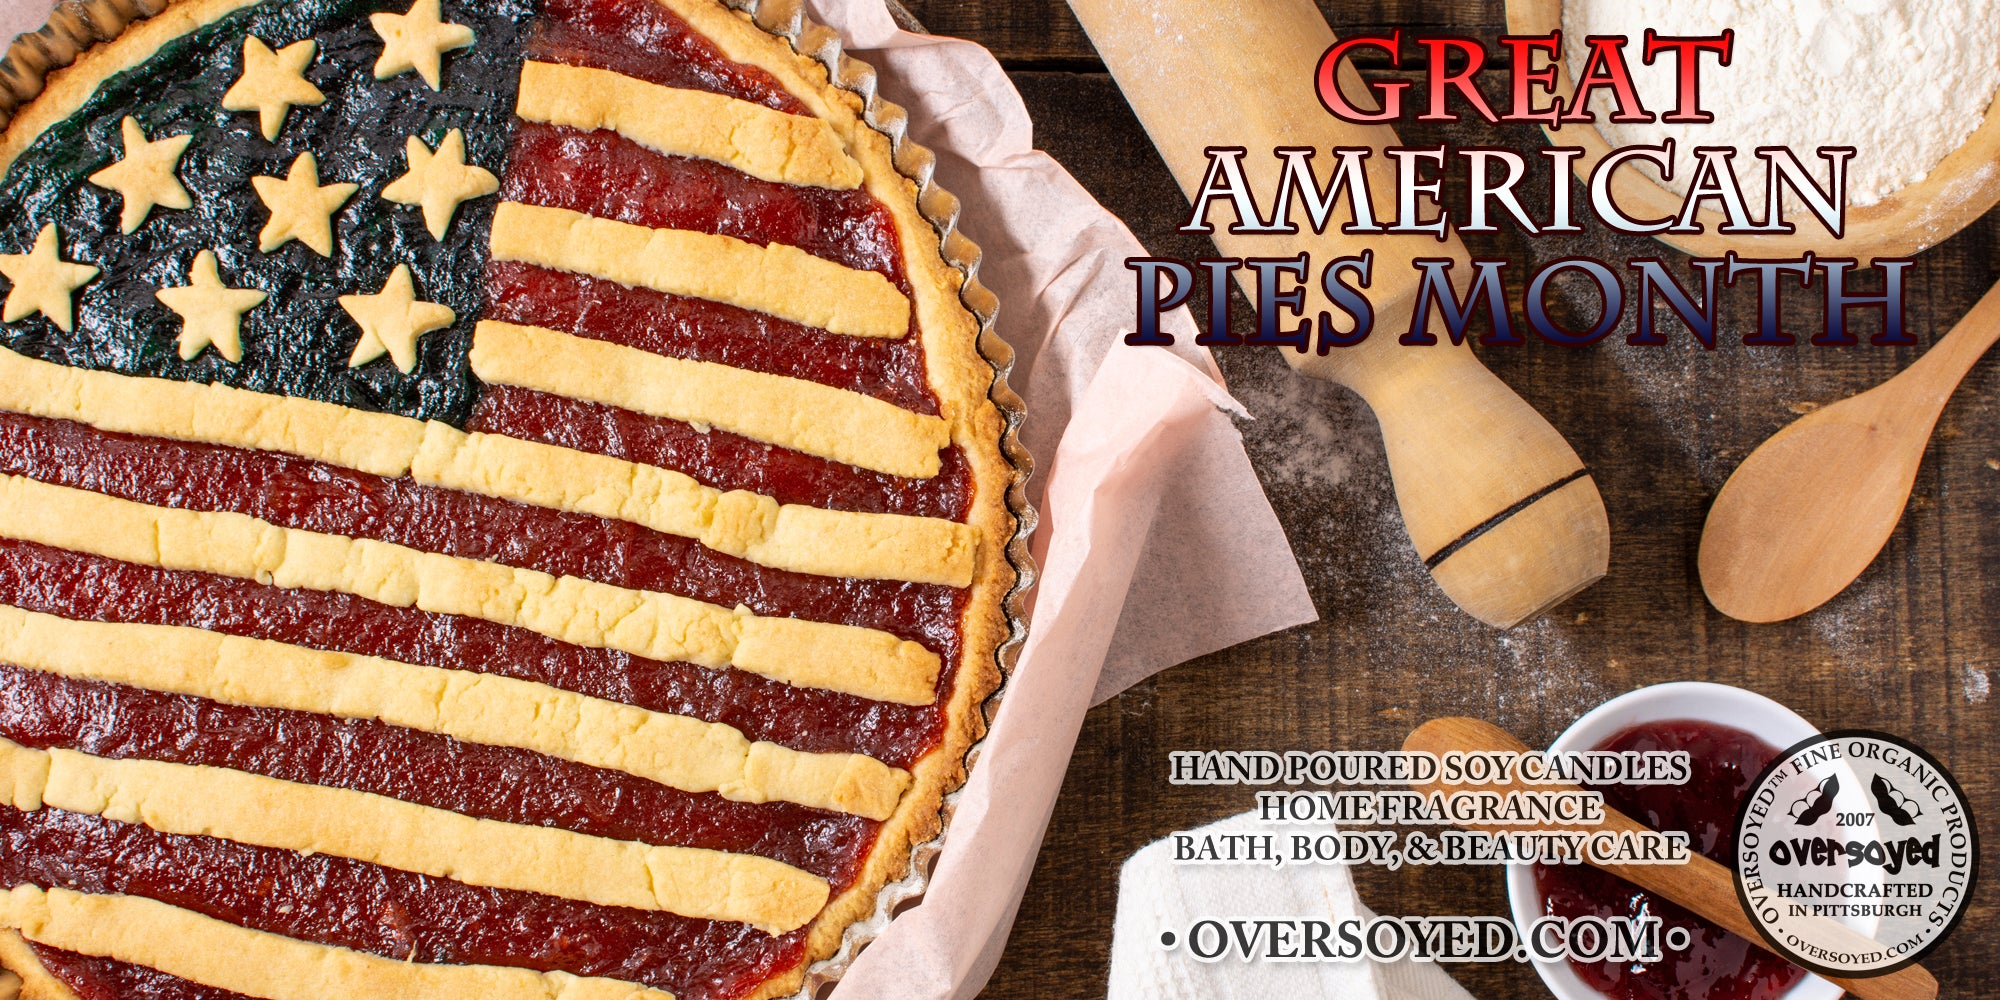 OverSoyed Fine Organic Products - Great American Pies Month Collection